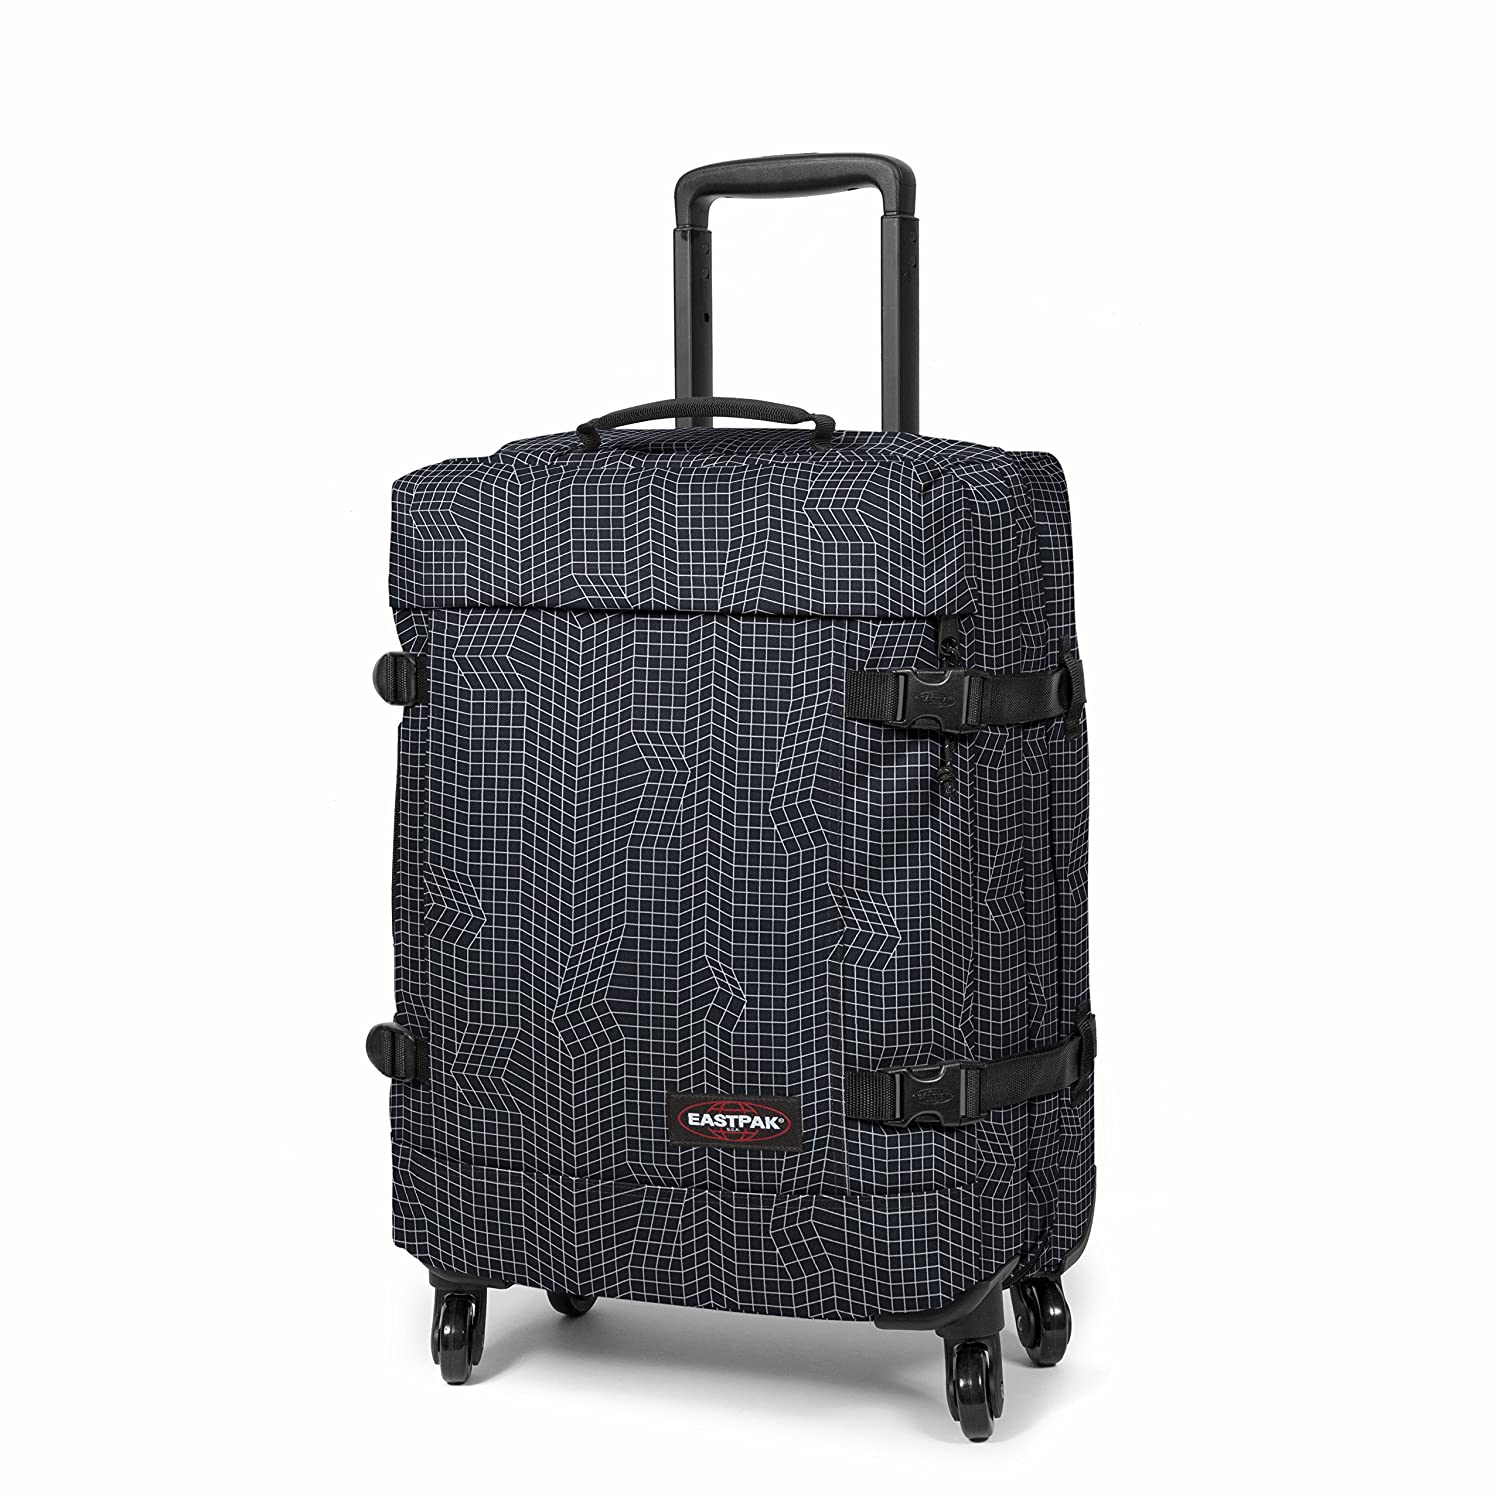 Valise souple Eastpak Trans4 TSA XL - 82 cm Black Denim noir 3fT2b